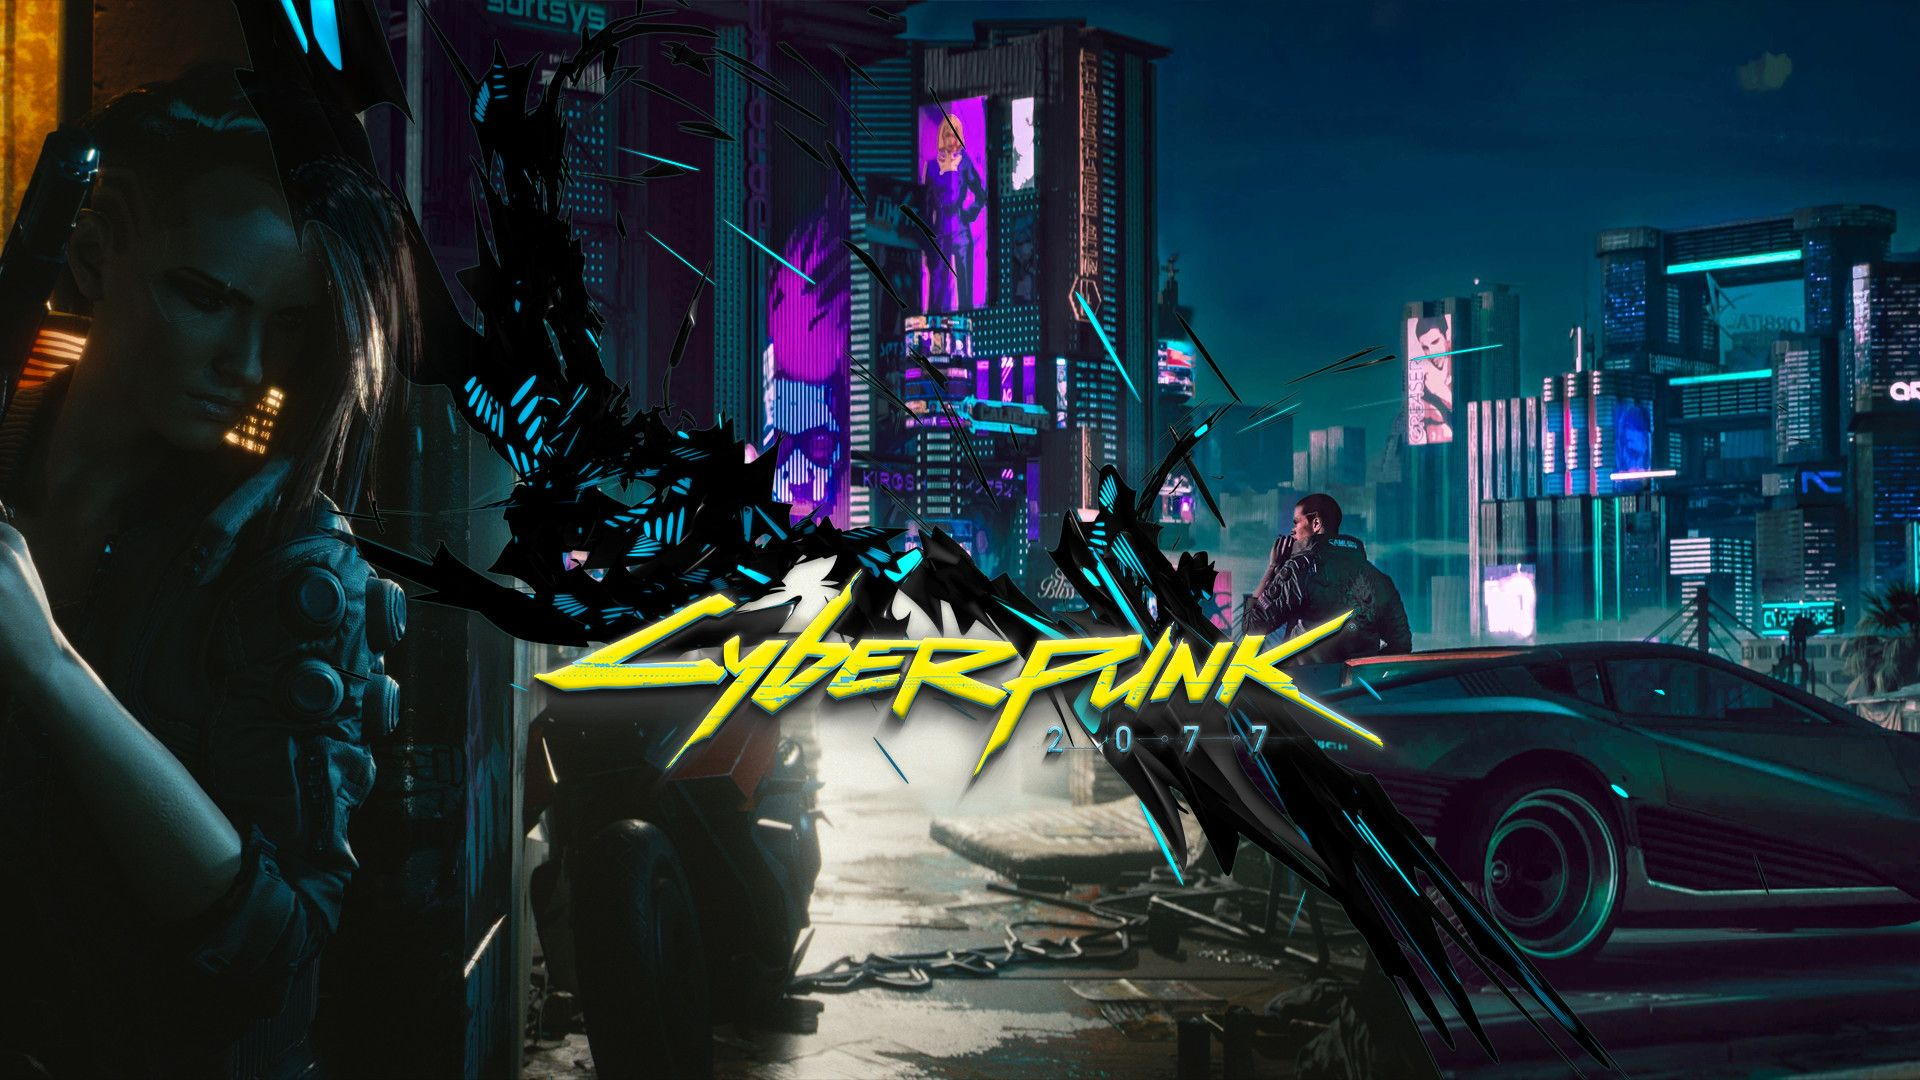 Cyberpunk 2077 Wallpapers   Top Cyberpunk 2077 Backgrounds 1920x1080